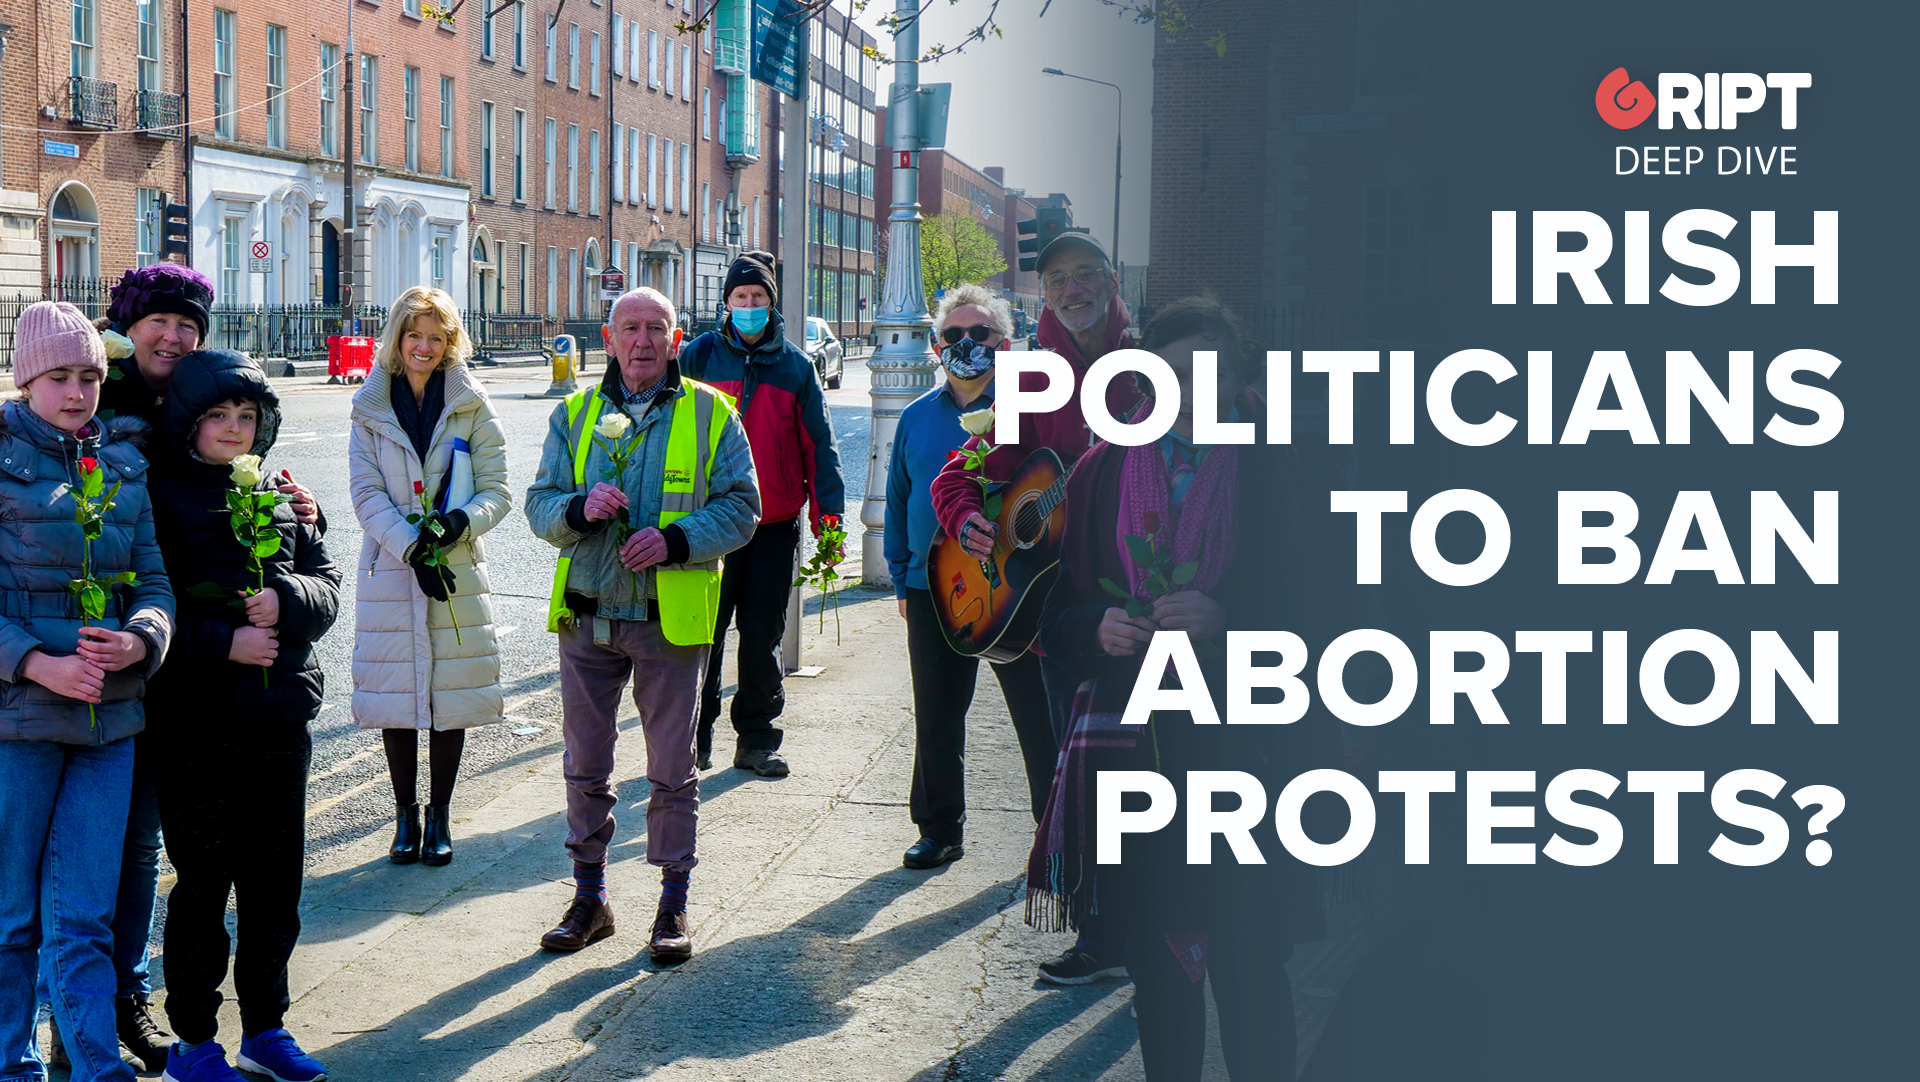 Irish Politicians To Ban Abortion Protests?